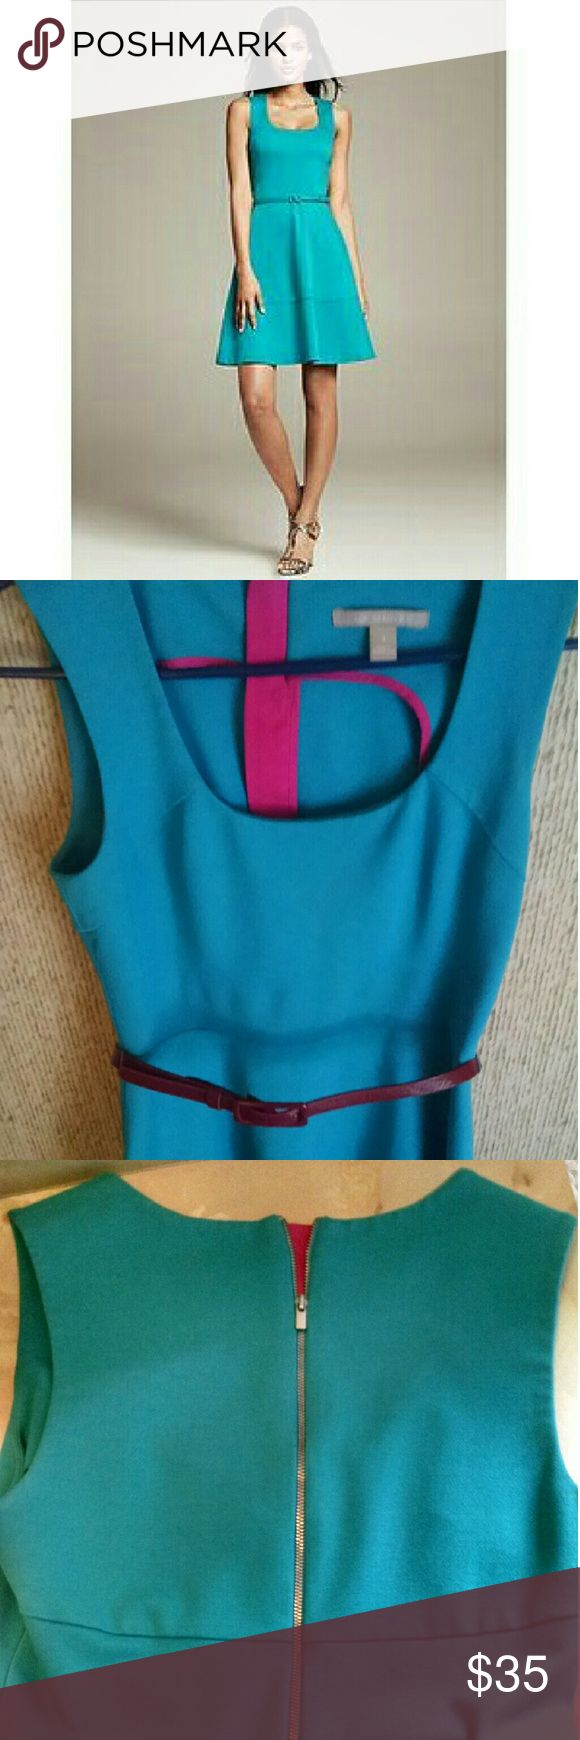 Banana Republic ponte dress Turquoise fit and flare dress from banana republic. Exposed zipper in back. Pink details on inside that can be exposed by partially zipping up.  Worn a few times but in excellent condition. Has string belt loops but not the original belt.  Will include the red belt as pictured in second pic.   1st pic is from retailer, for reference only Banana Republic Dresses Mini